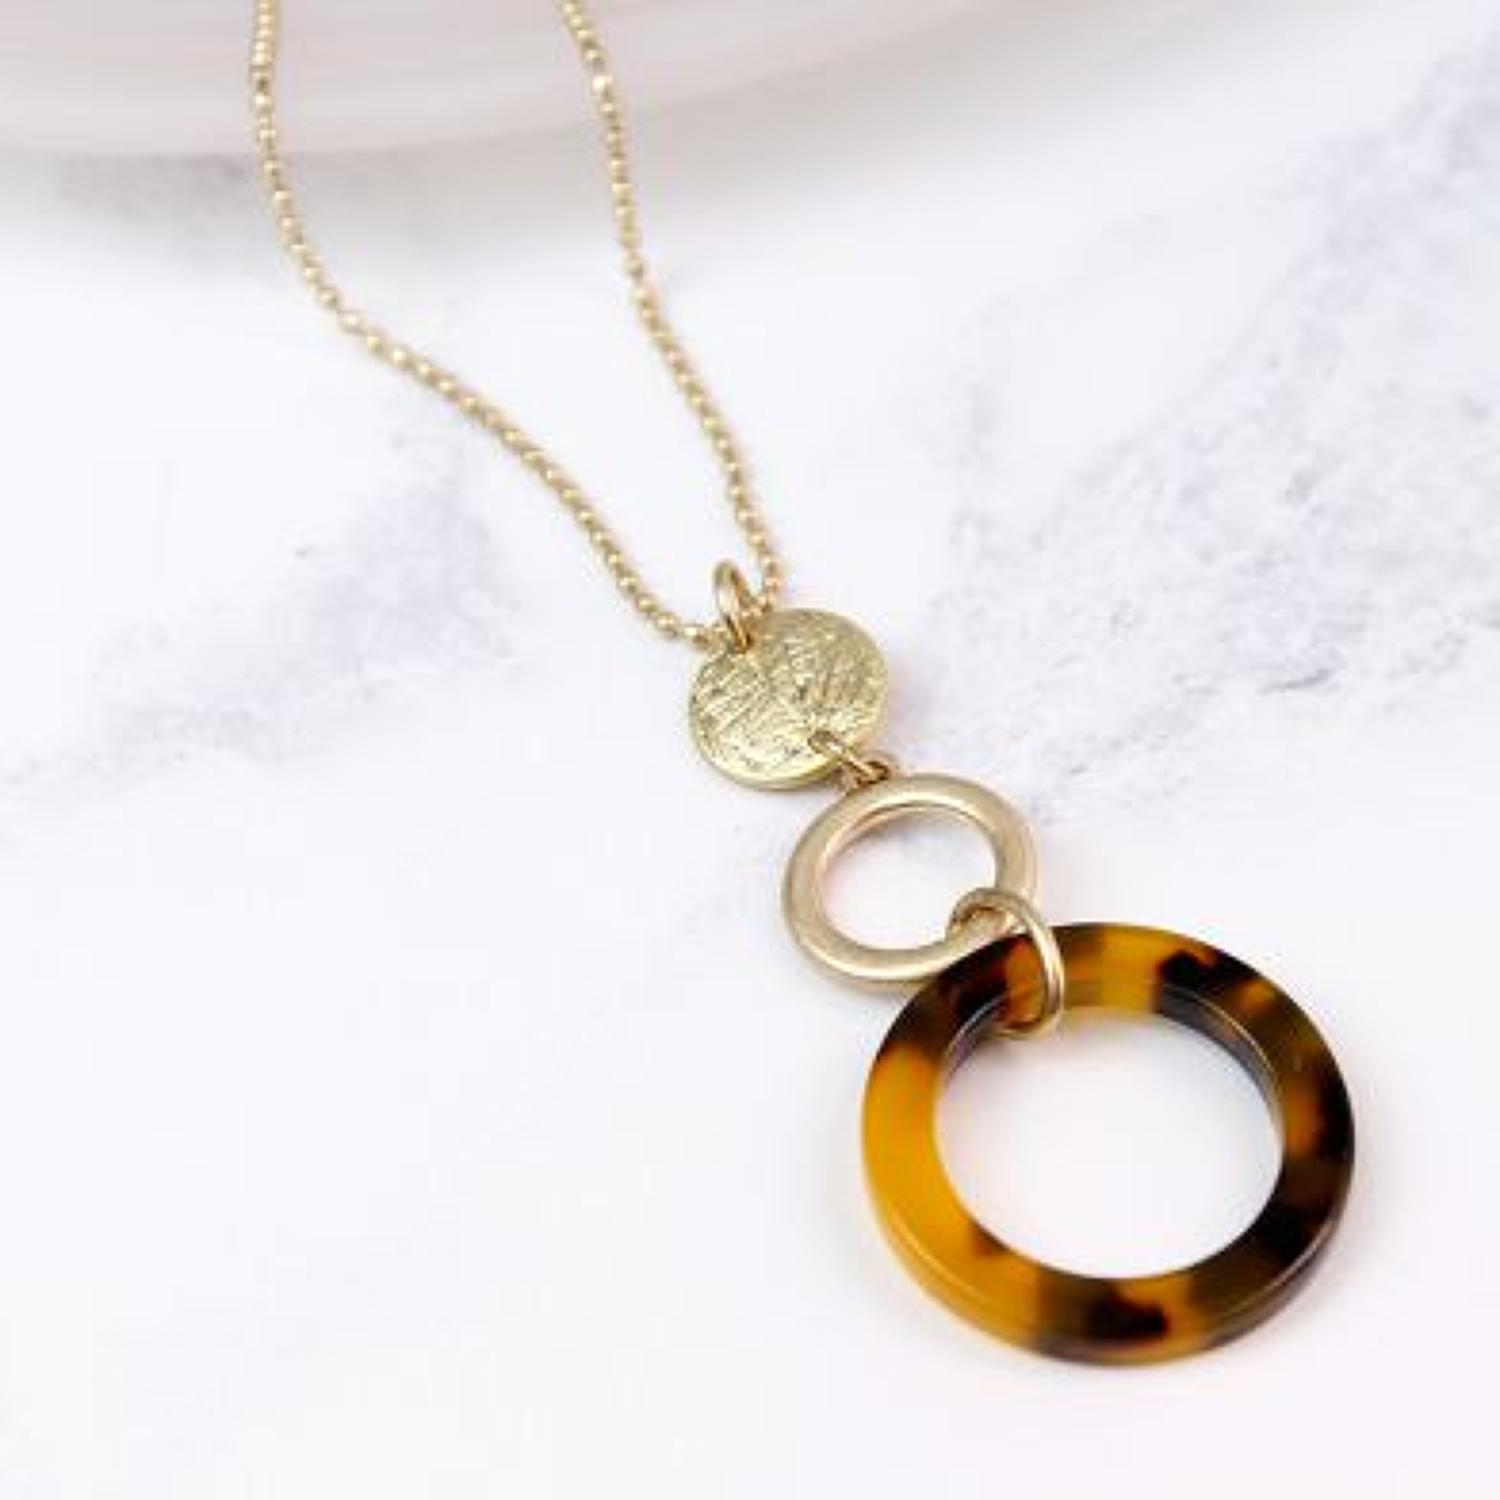 POM - Worn gold disc/tortoise shell necklace